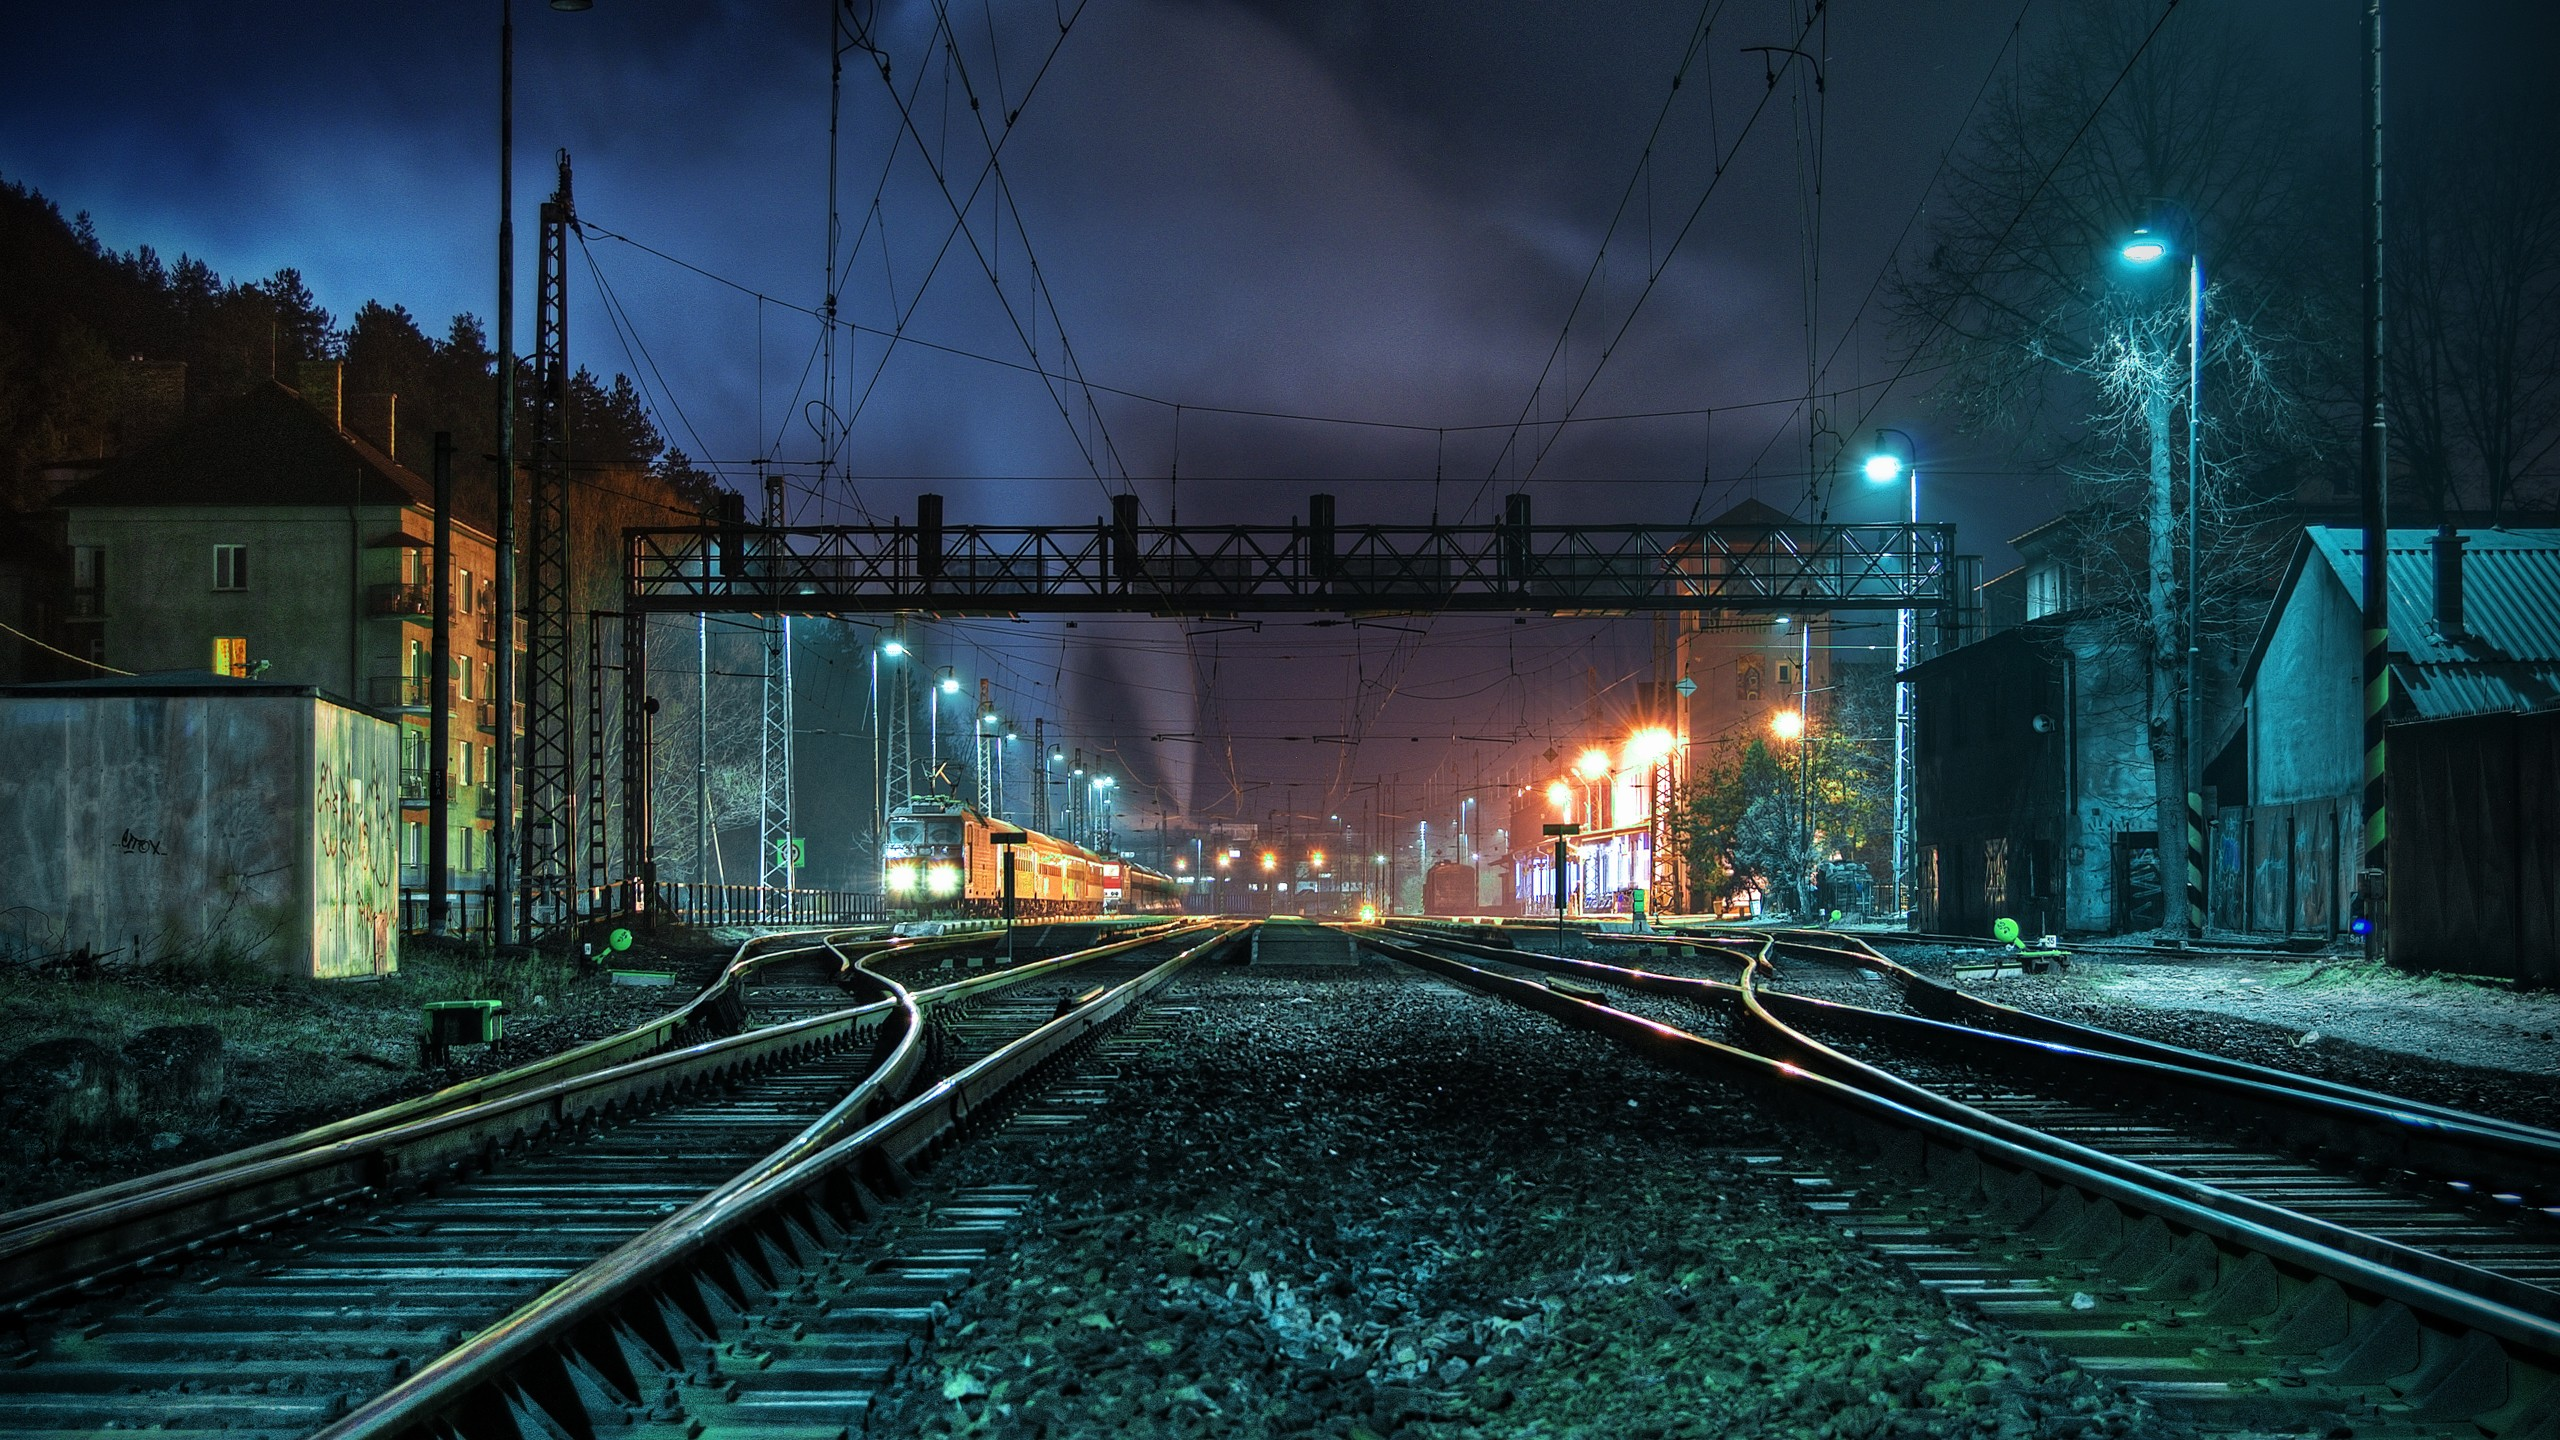 awesome train track wallpaper 37971